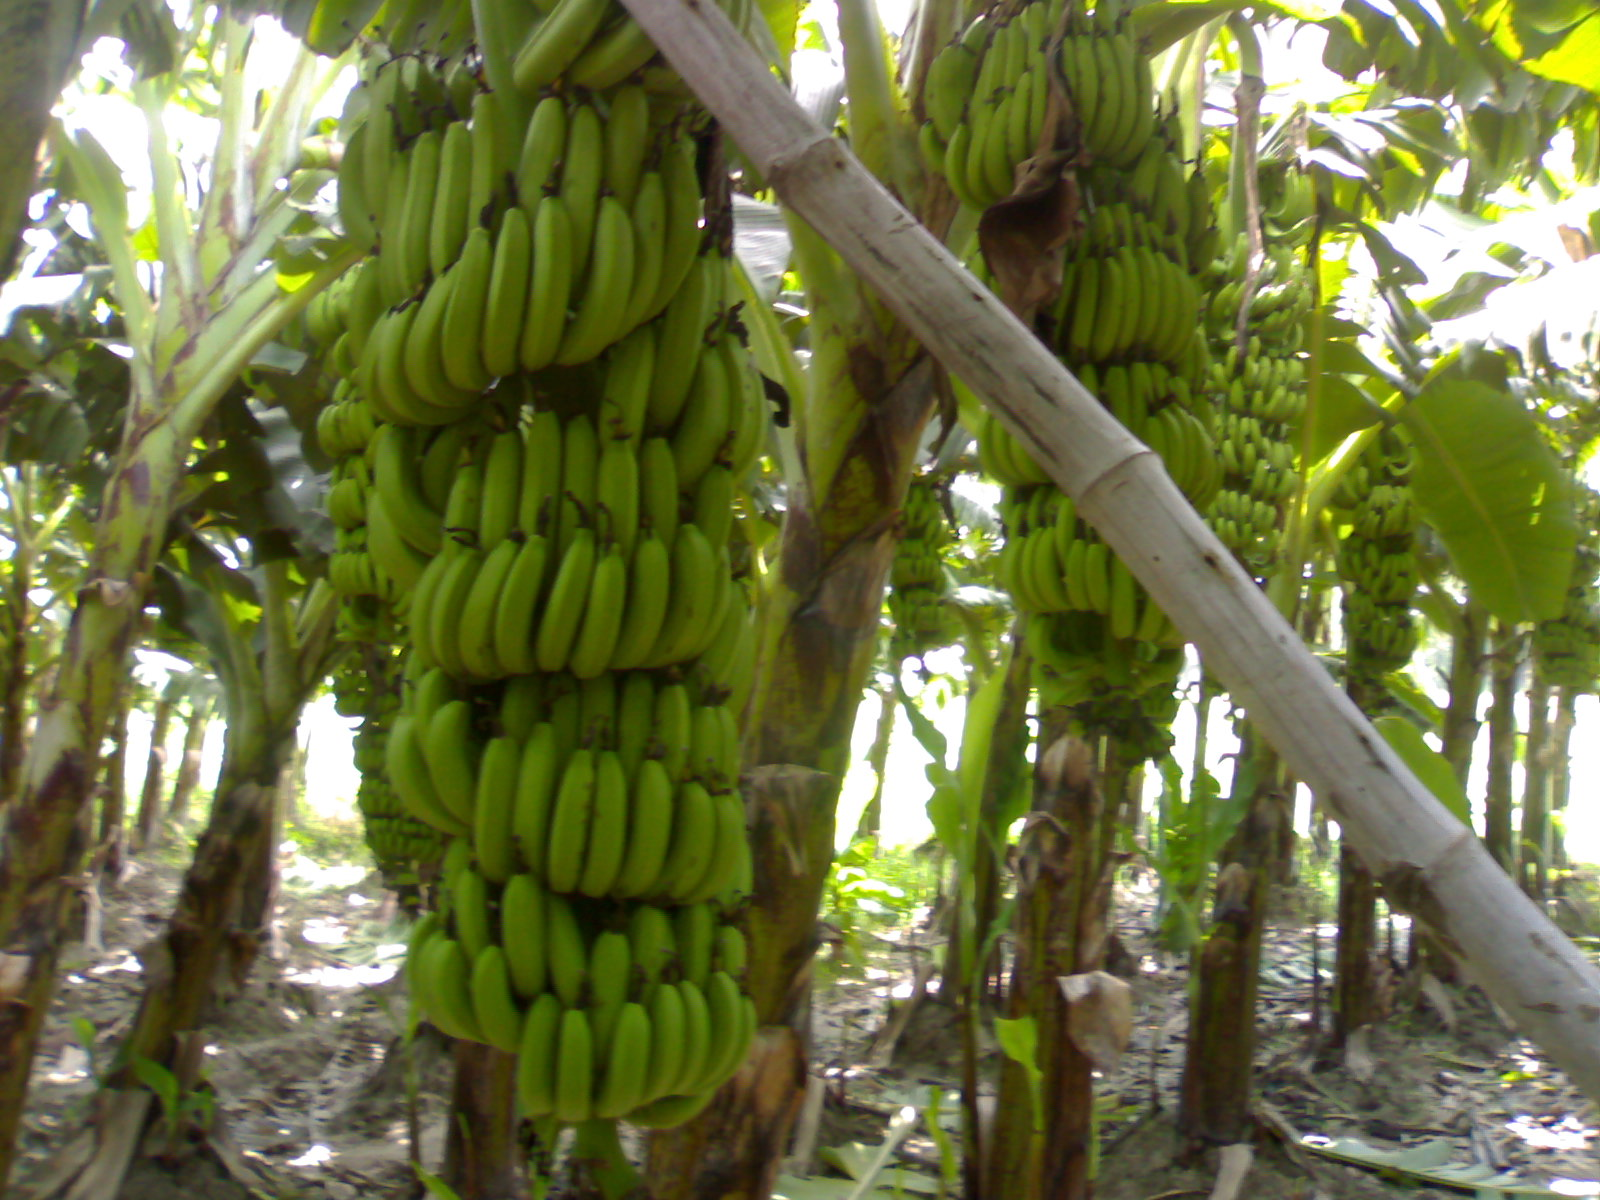 Le banane in costa rica dalla chiquita al biologico for Pianta di banana